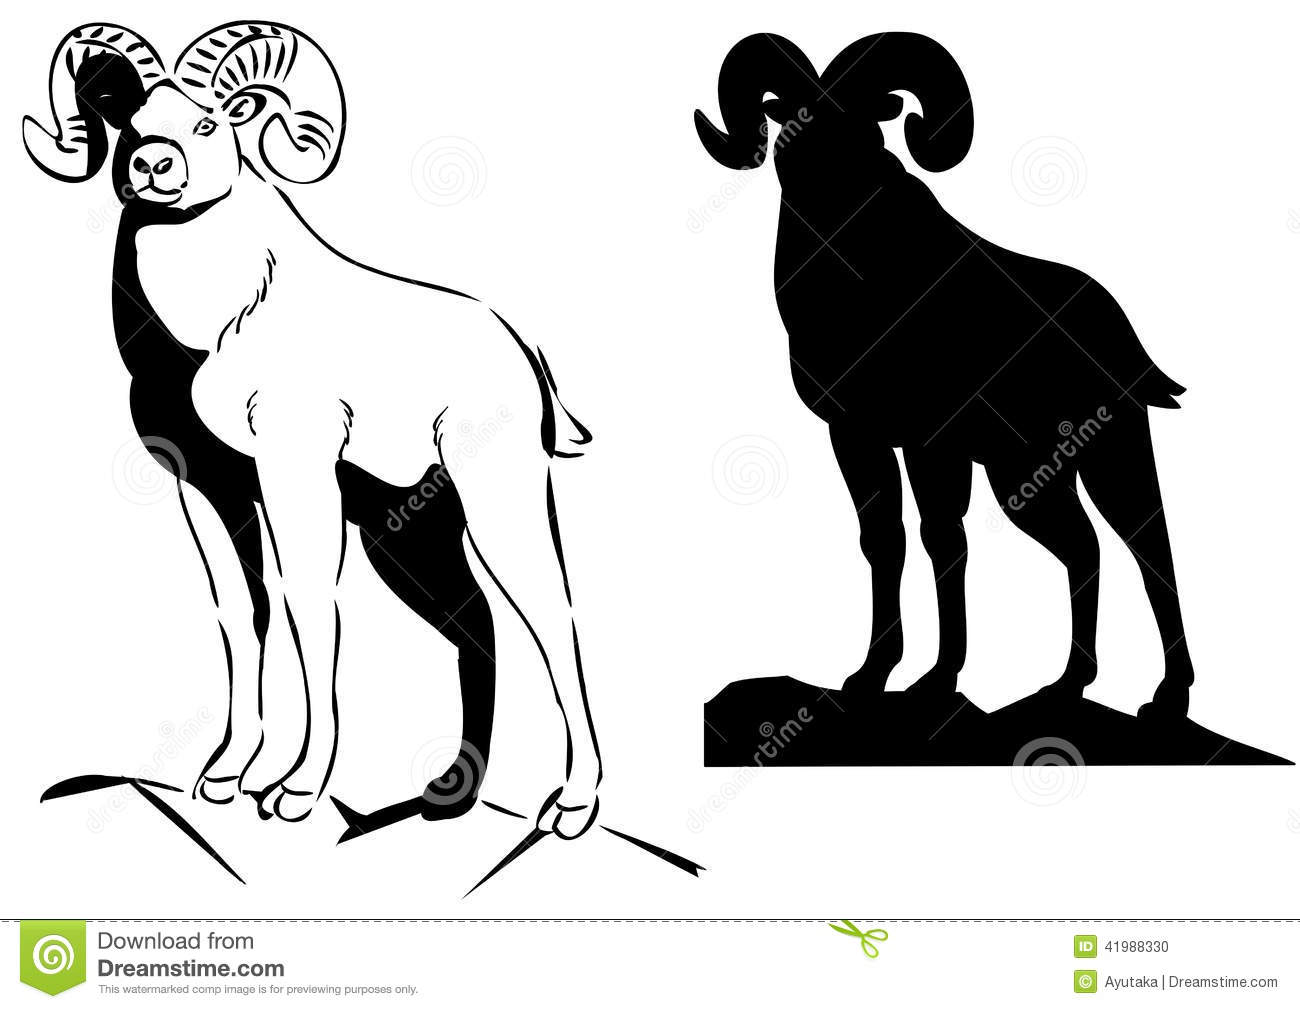 Big Horn Sheep Stock Vector - Image: 41988330